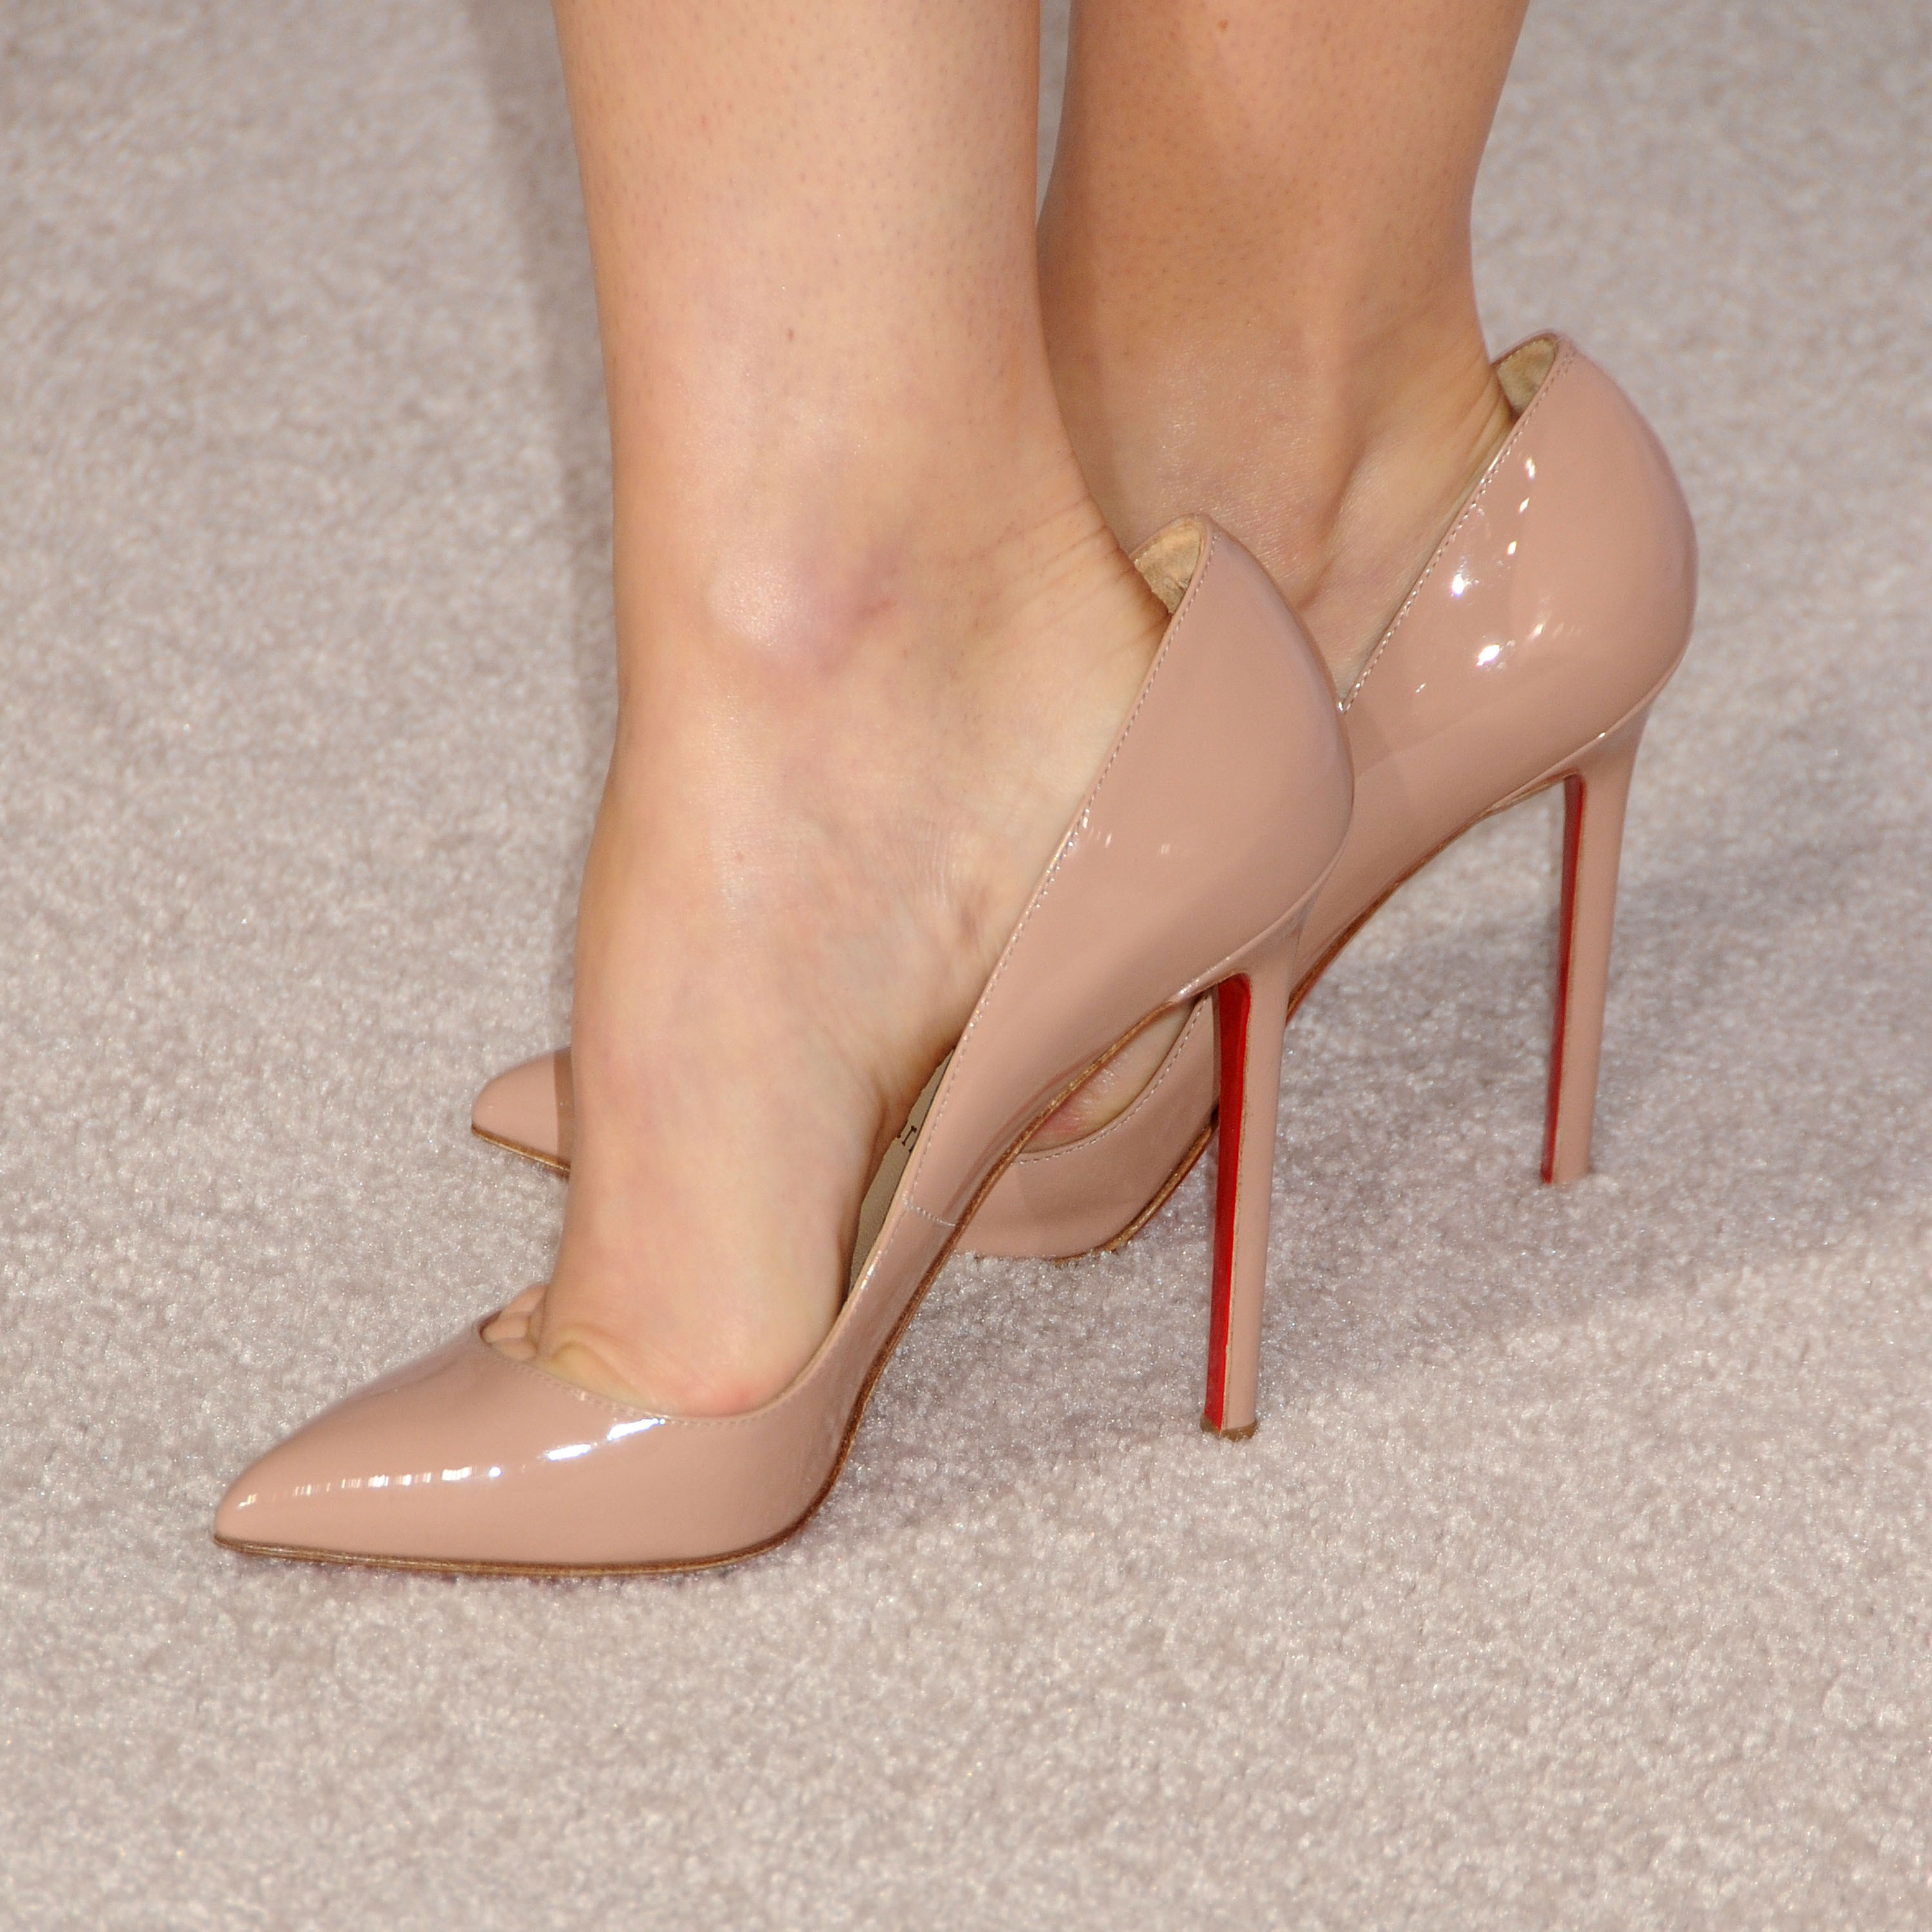 Demi lovato high heels 8